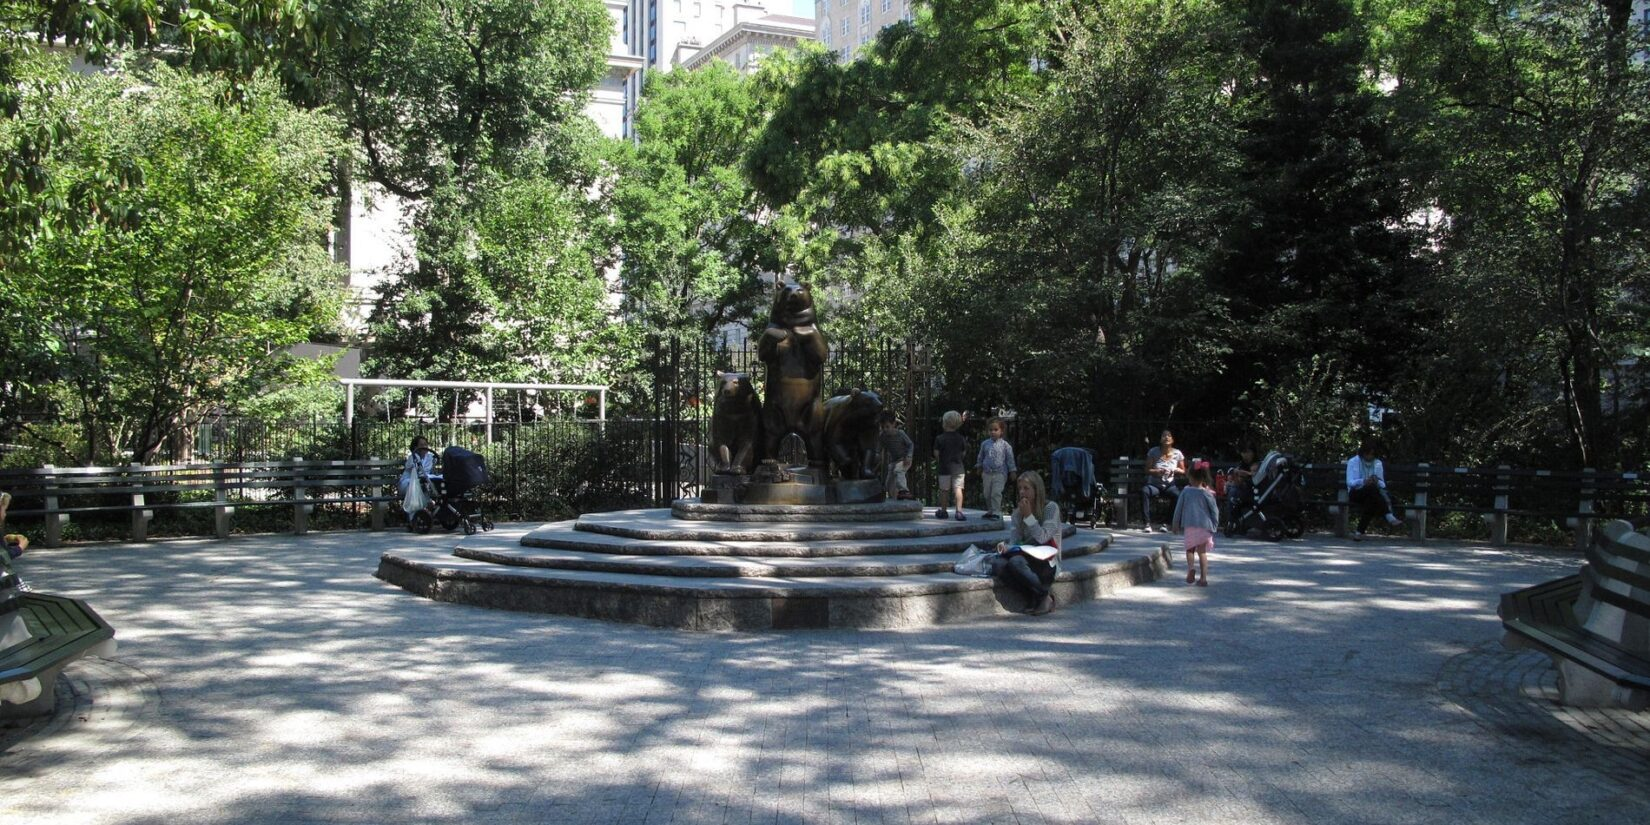 The circular plaza provides bench seating with the statue at the center.